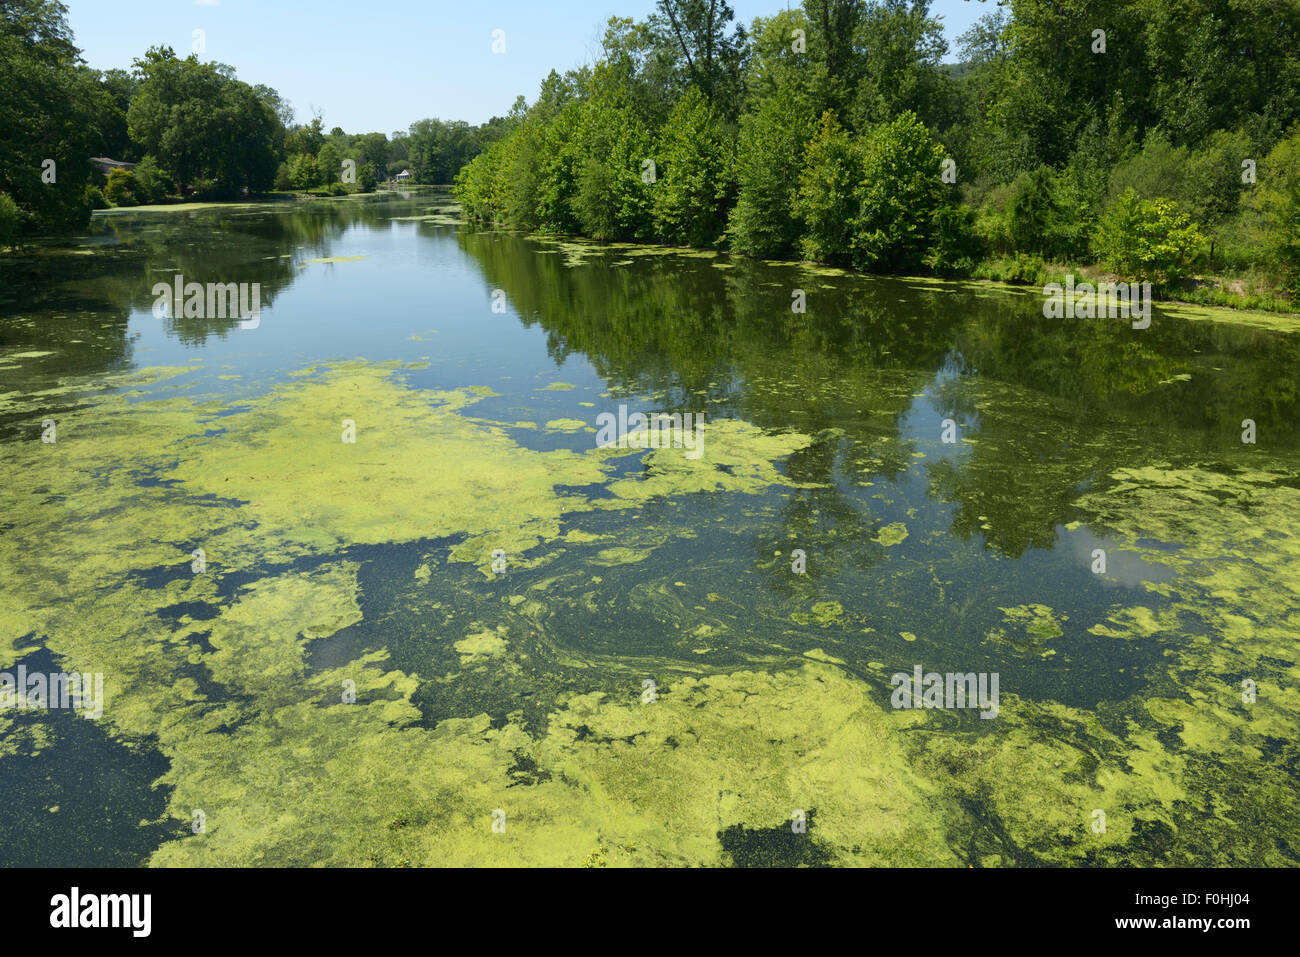 Algae bloom resulting from eutrophication, Ramapo River, northern NJ. Water pollution - Stock Image